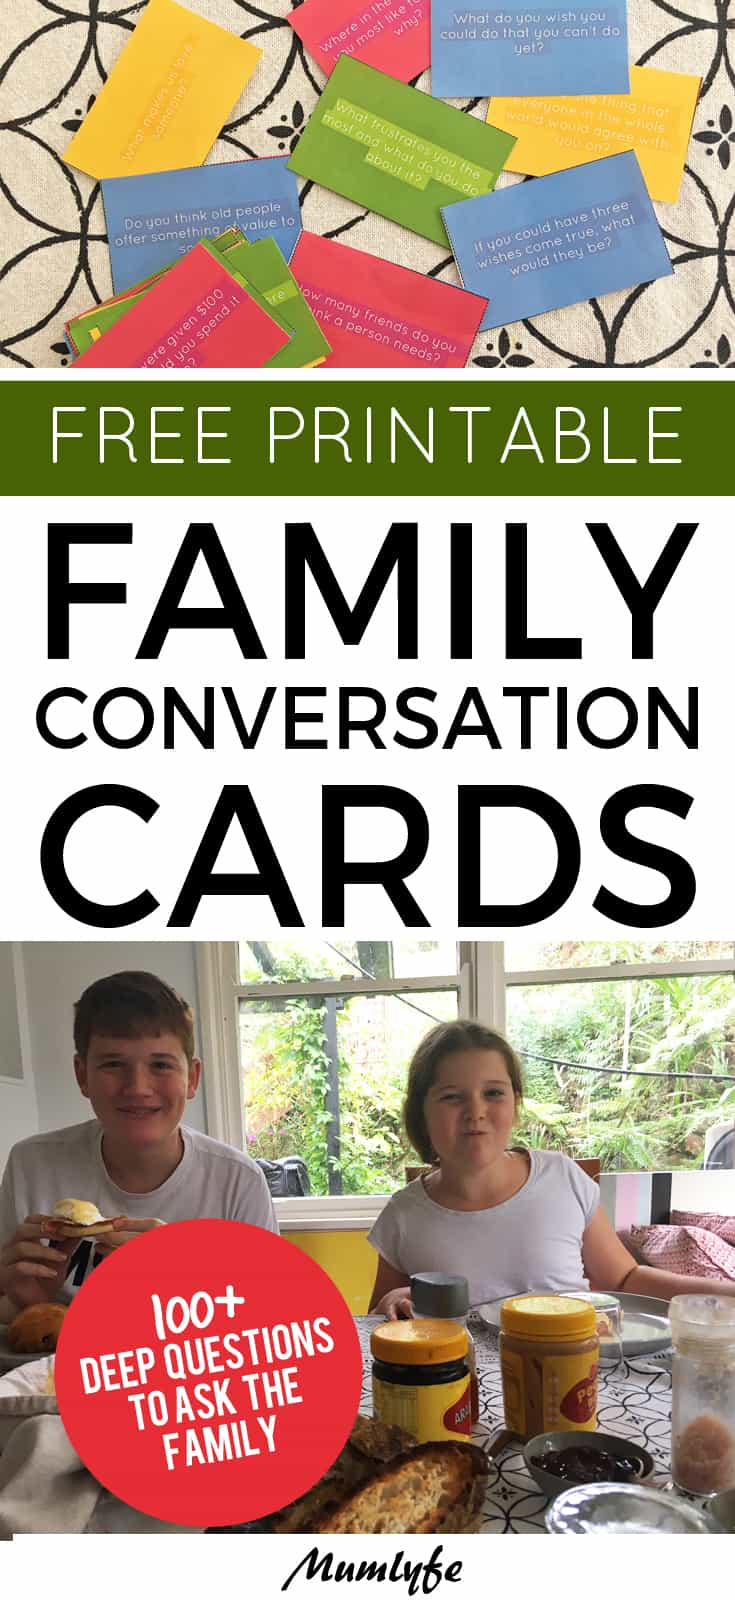 Family conversation cards - free printable